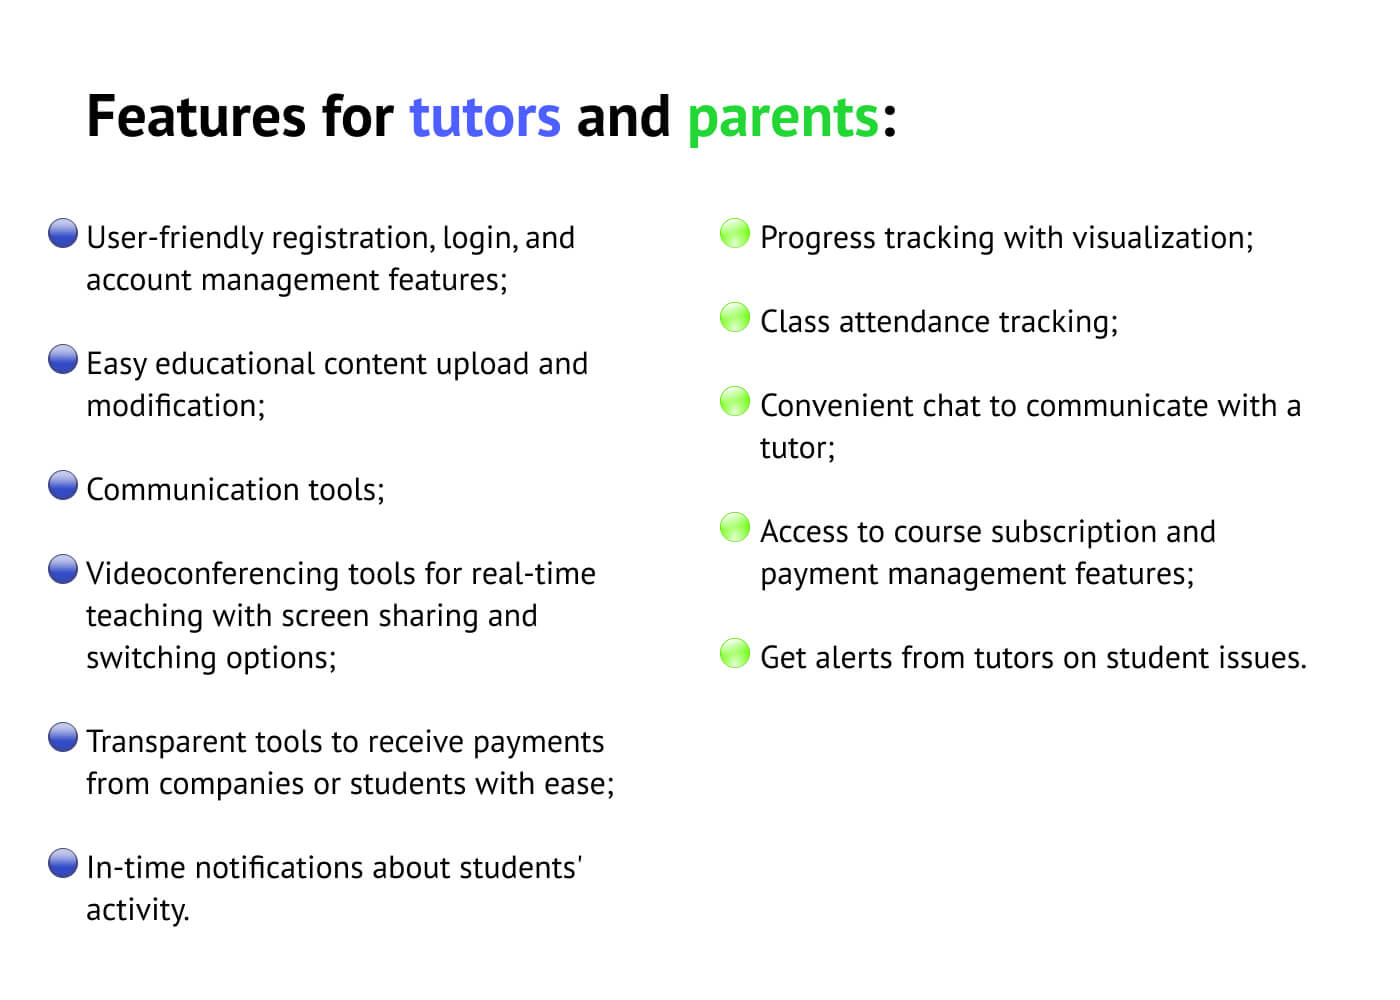 E-learning features for tutors and parents